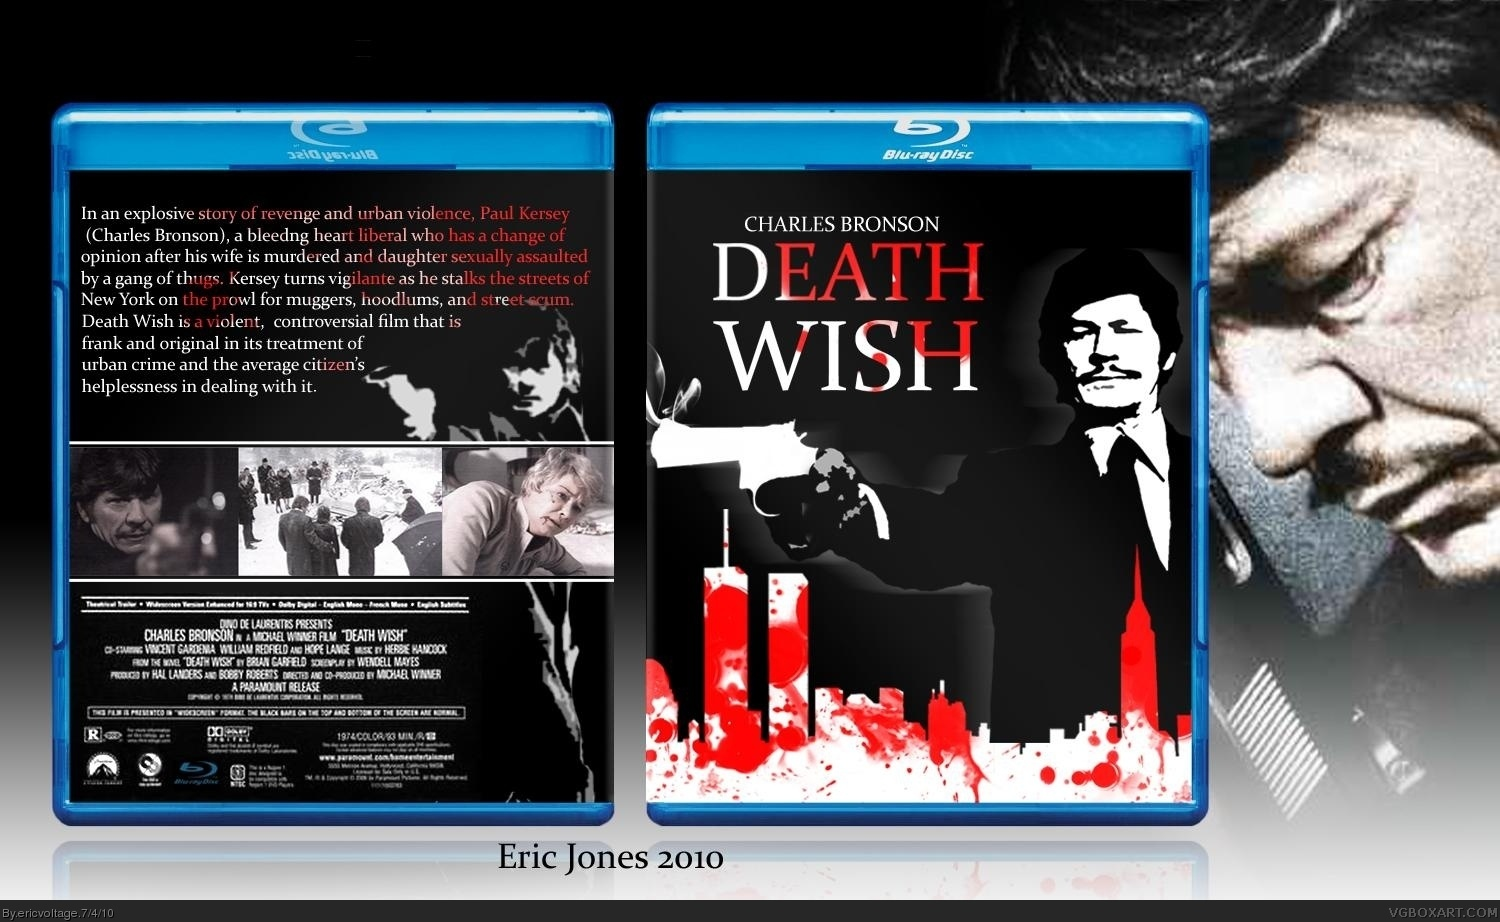 death wish movies box art cover by ericvoltage